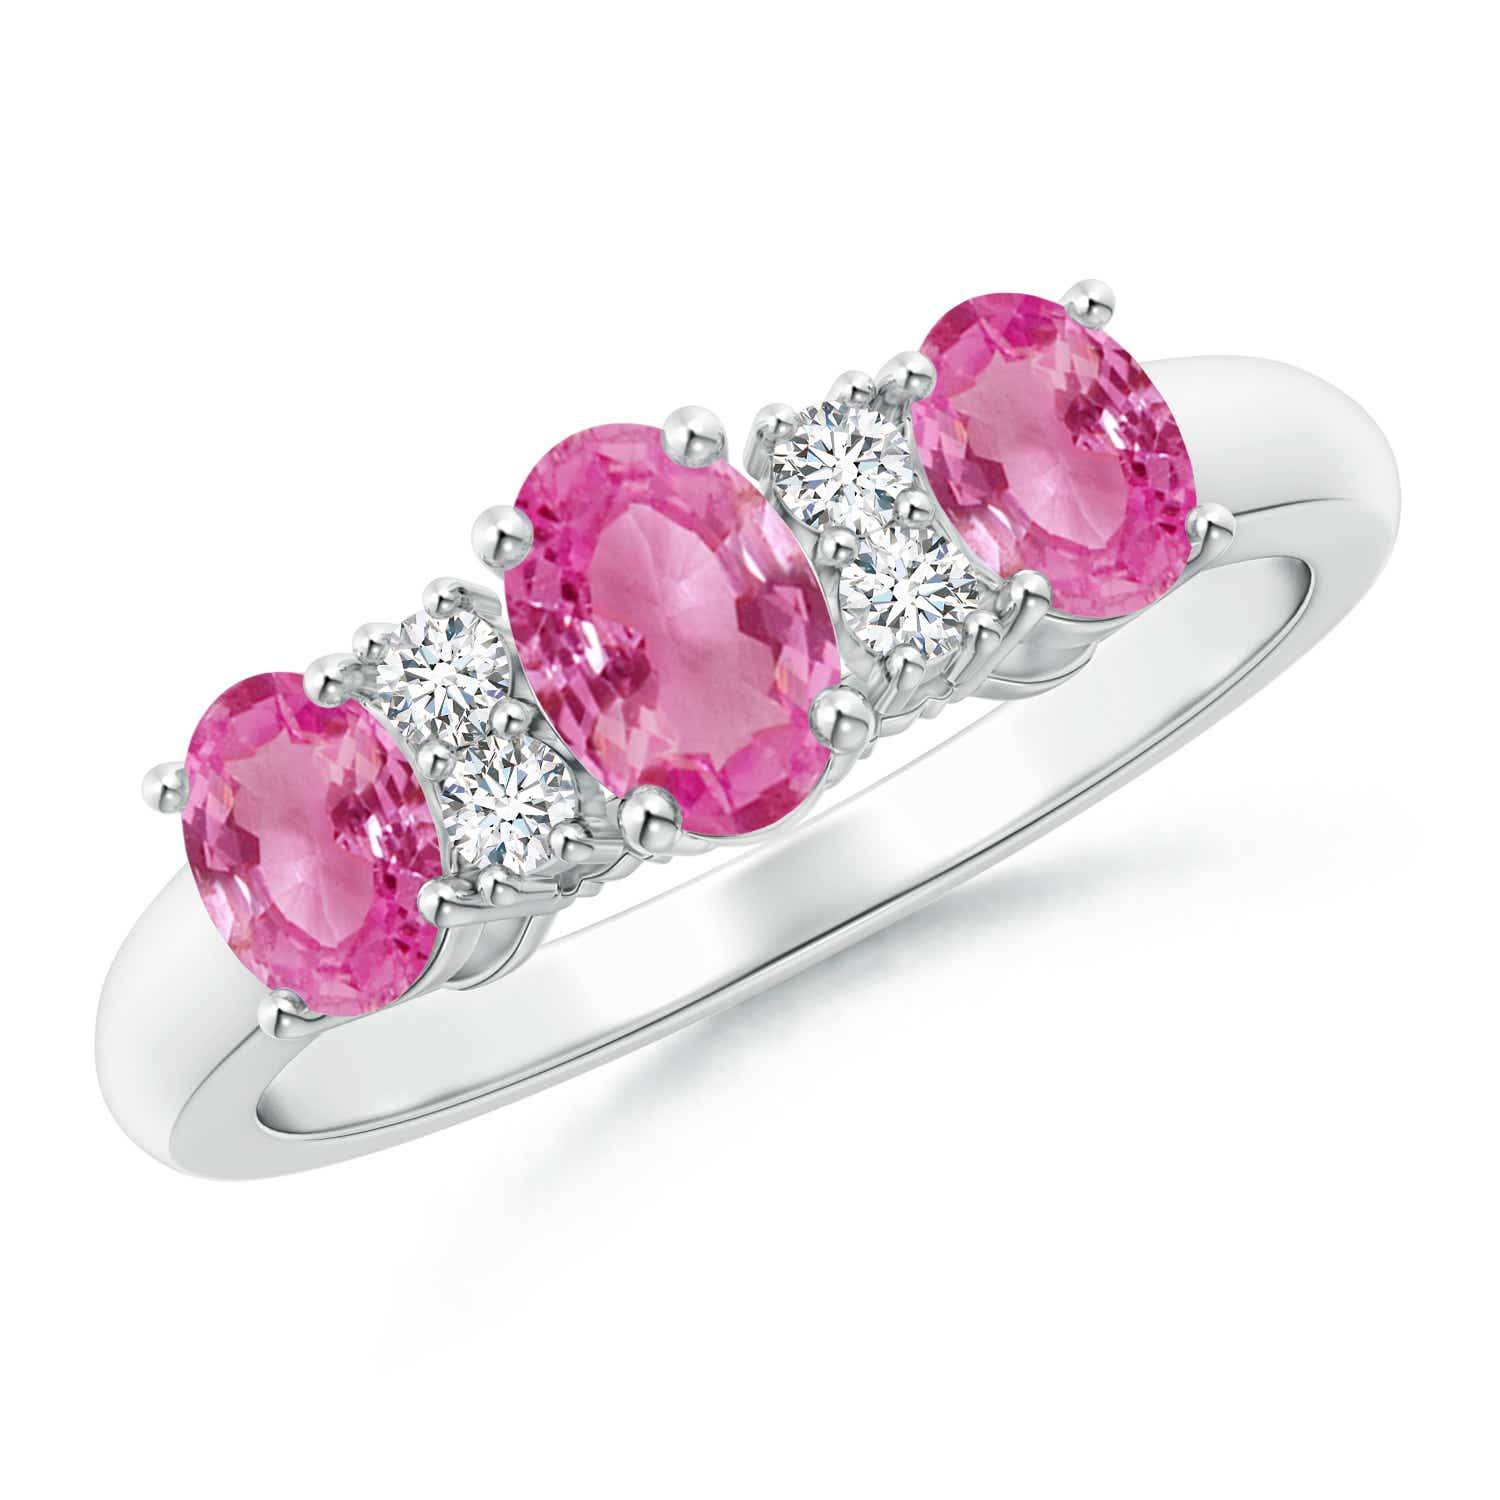 Oval Three Stone Pink Sapphire Engagement Ring with Diamonds | Angara